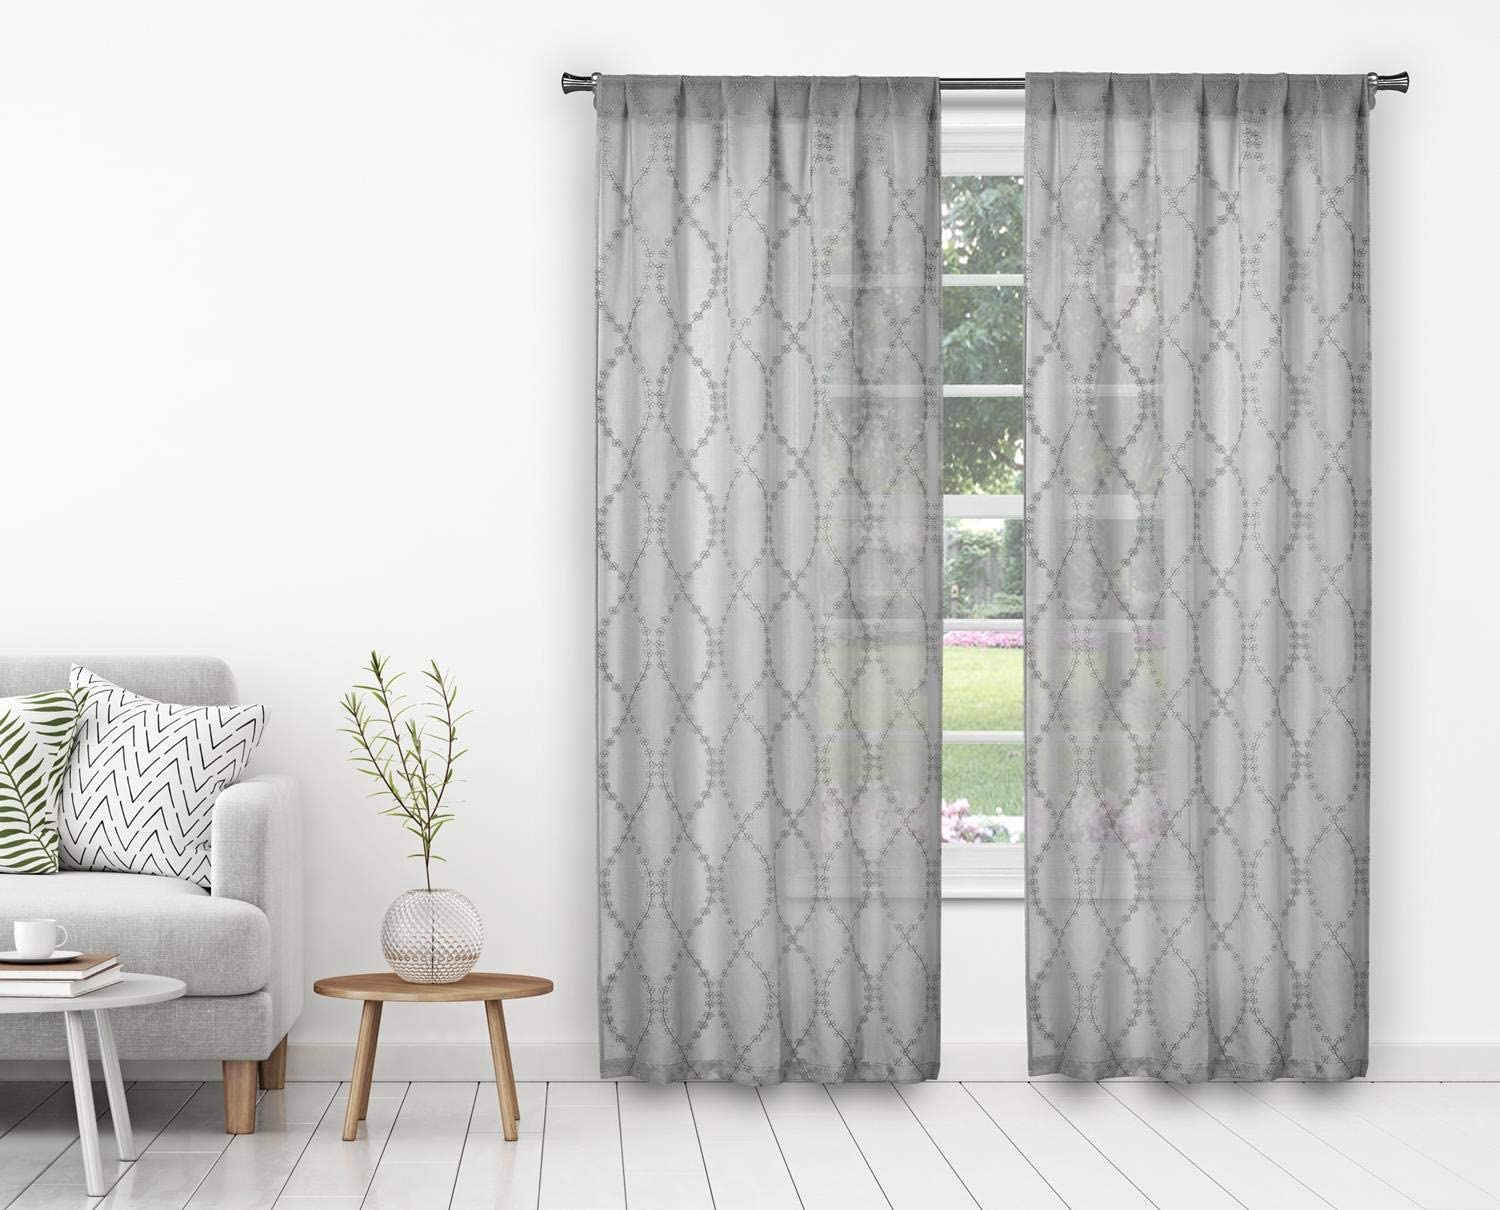 Home Maison Lalit Floral Wave Embroided Window Curtain, 38x84, Grey